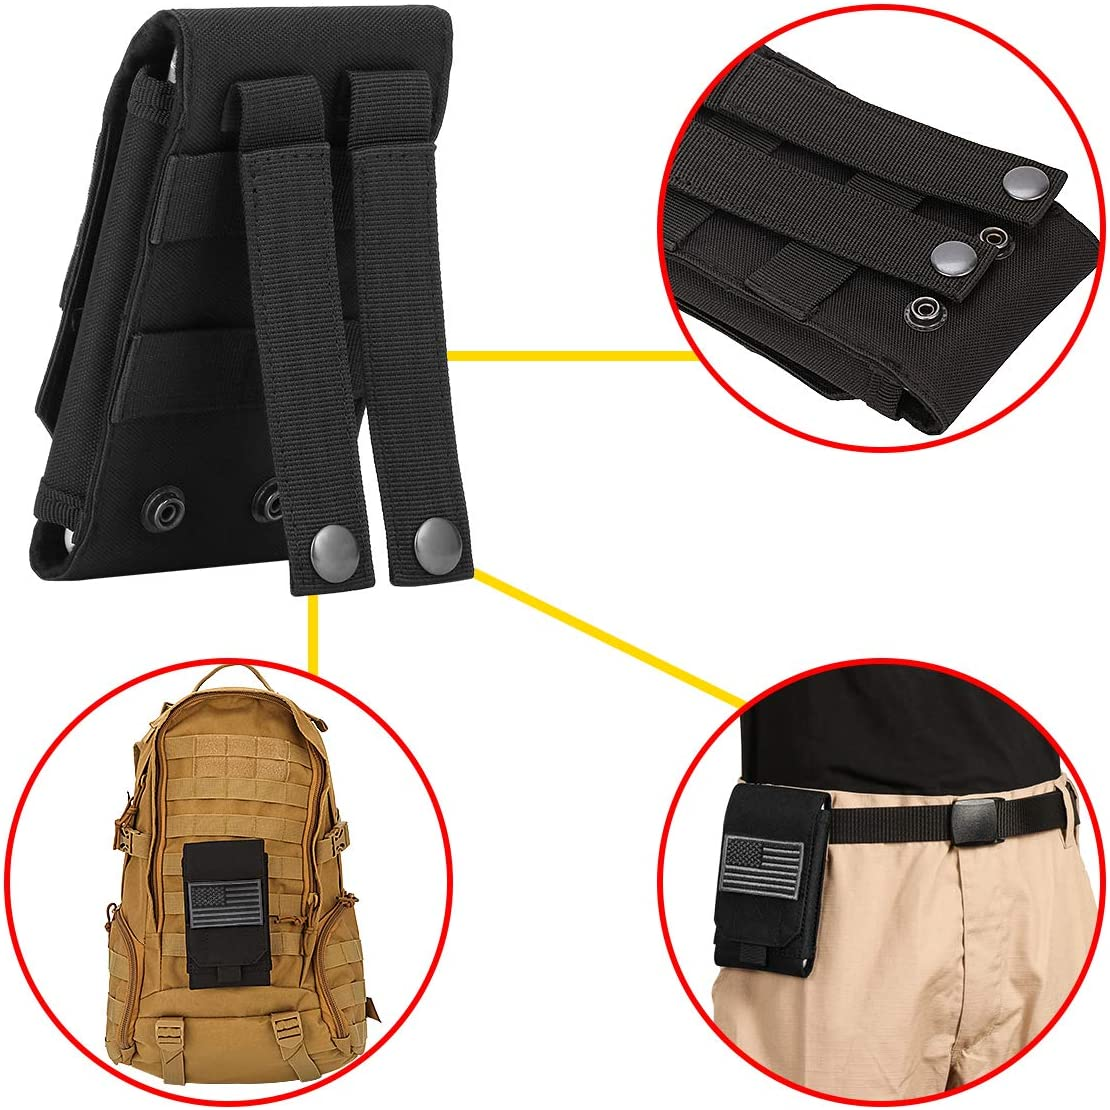 IronSeals Tactical Molle Pouch Large Heavy Duty Belt Pouch Phone Holster with Flag Patch for iPhone 12 Pro Max//11 Pro Max//11//XS Max//X//8 Plus//8 Samsung Note 10 Plus//10//9//8 Galaxy S9 Plus//S9